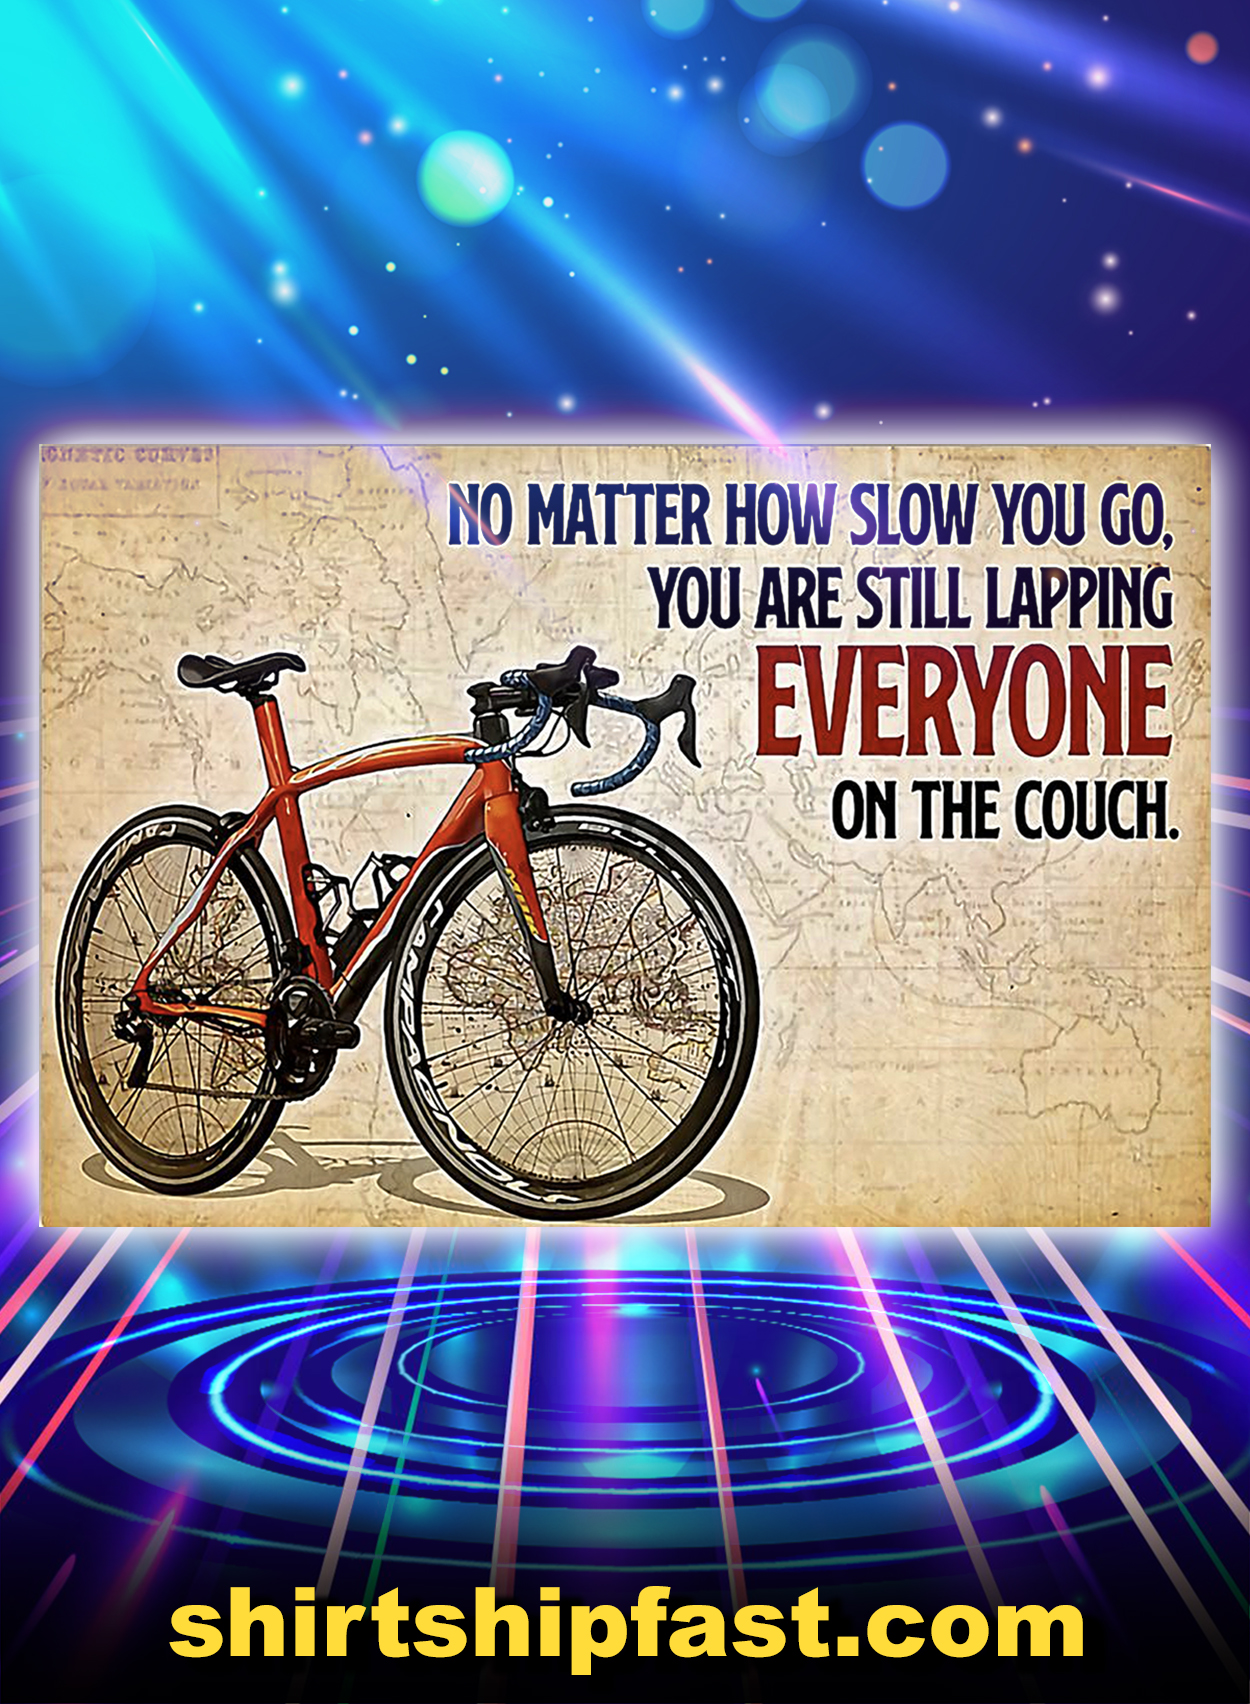 Cycling bicycle no matter how slow you go poster - A2